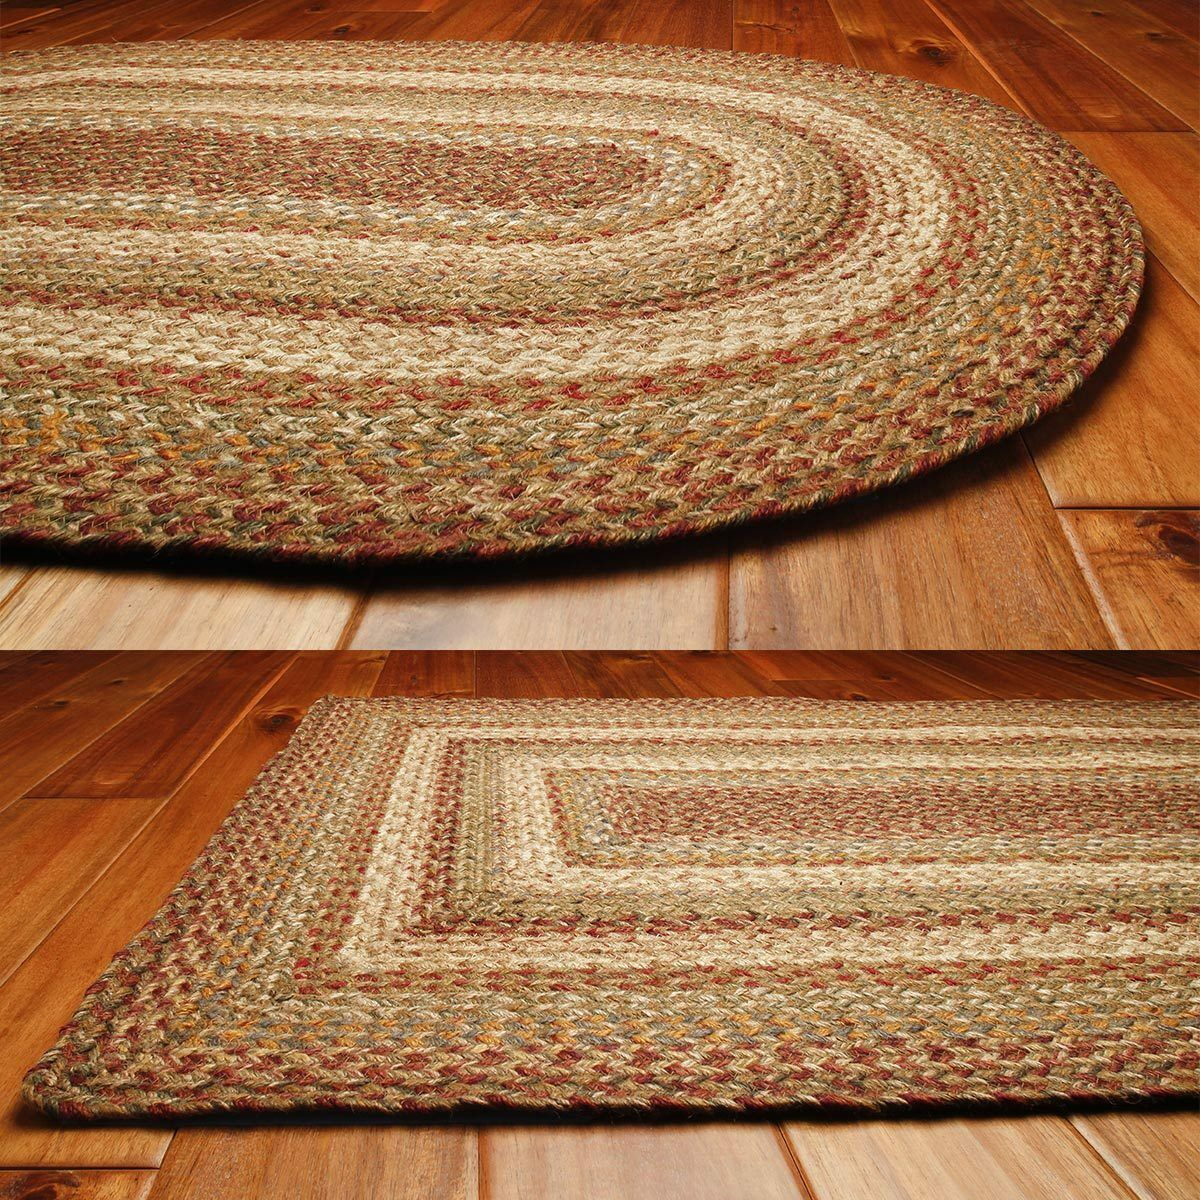 Details About Harvest Jute Braided Rugs By Homespice Decor In 2020 Braided Jute Rug Braided Area Rugs Braided Rugs